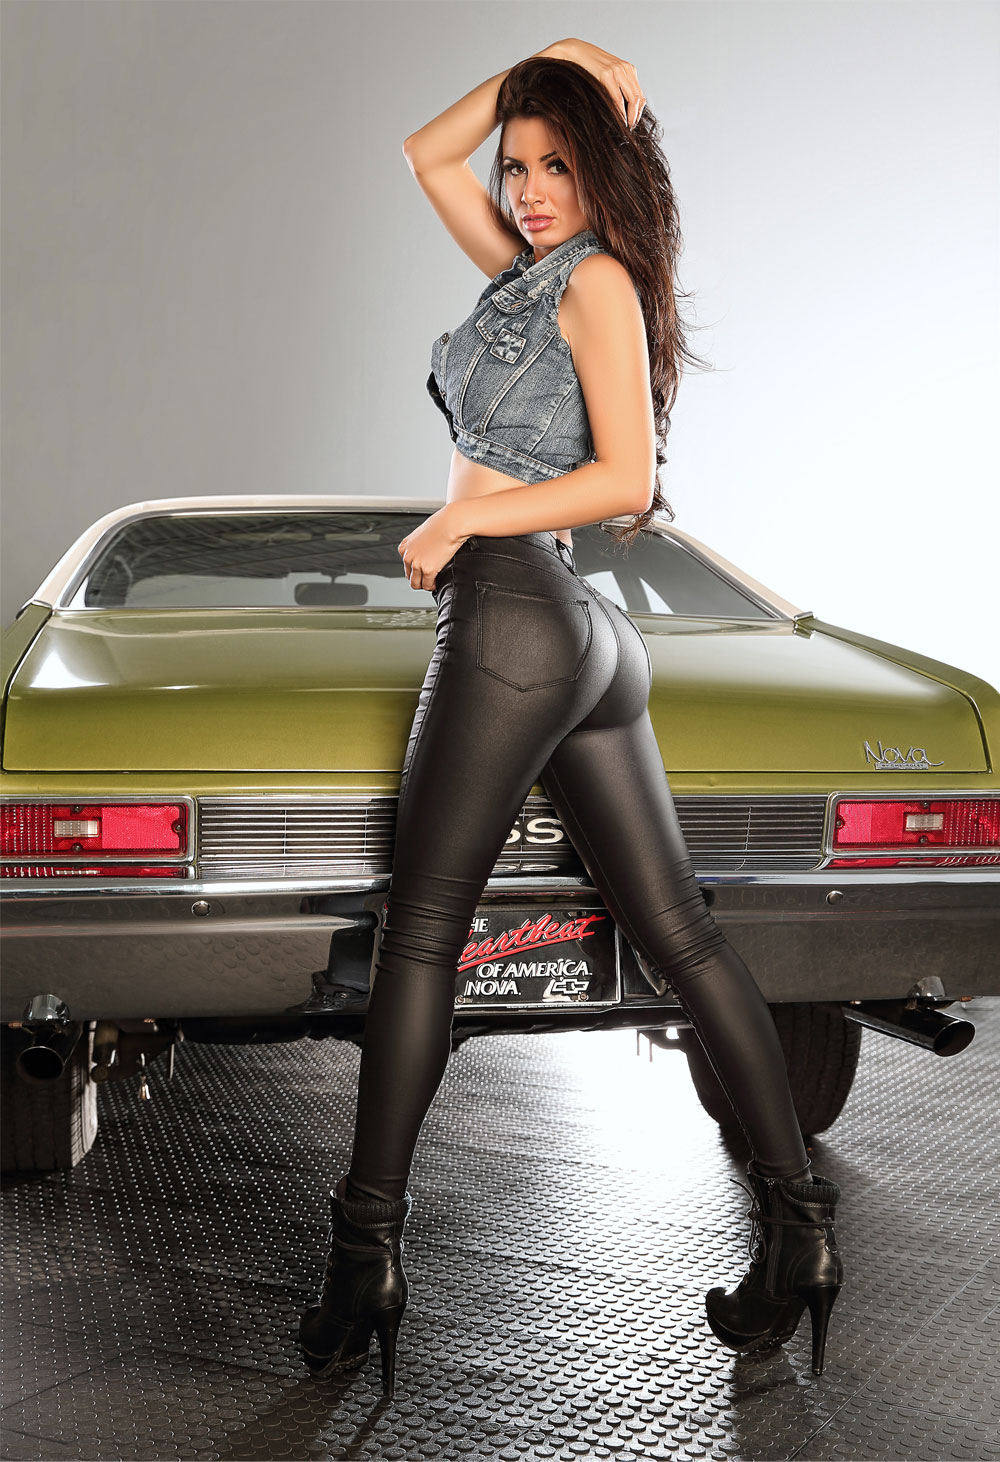 Corvette Girl Wallpaper 4 Awesome Muscle Cars 1 Beautiful Rock Girl 97 9 The